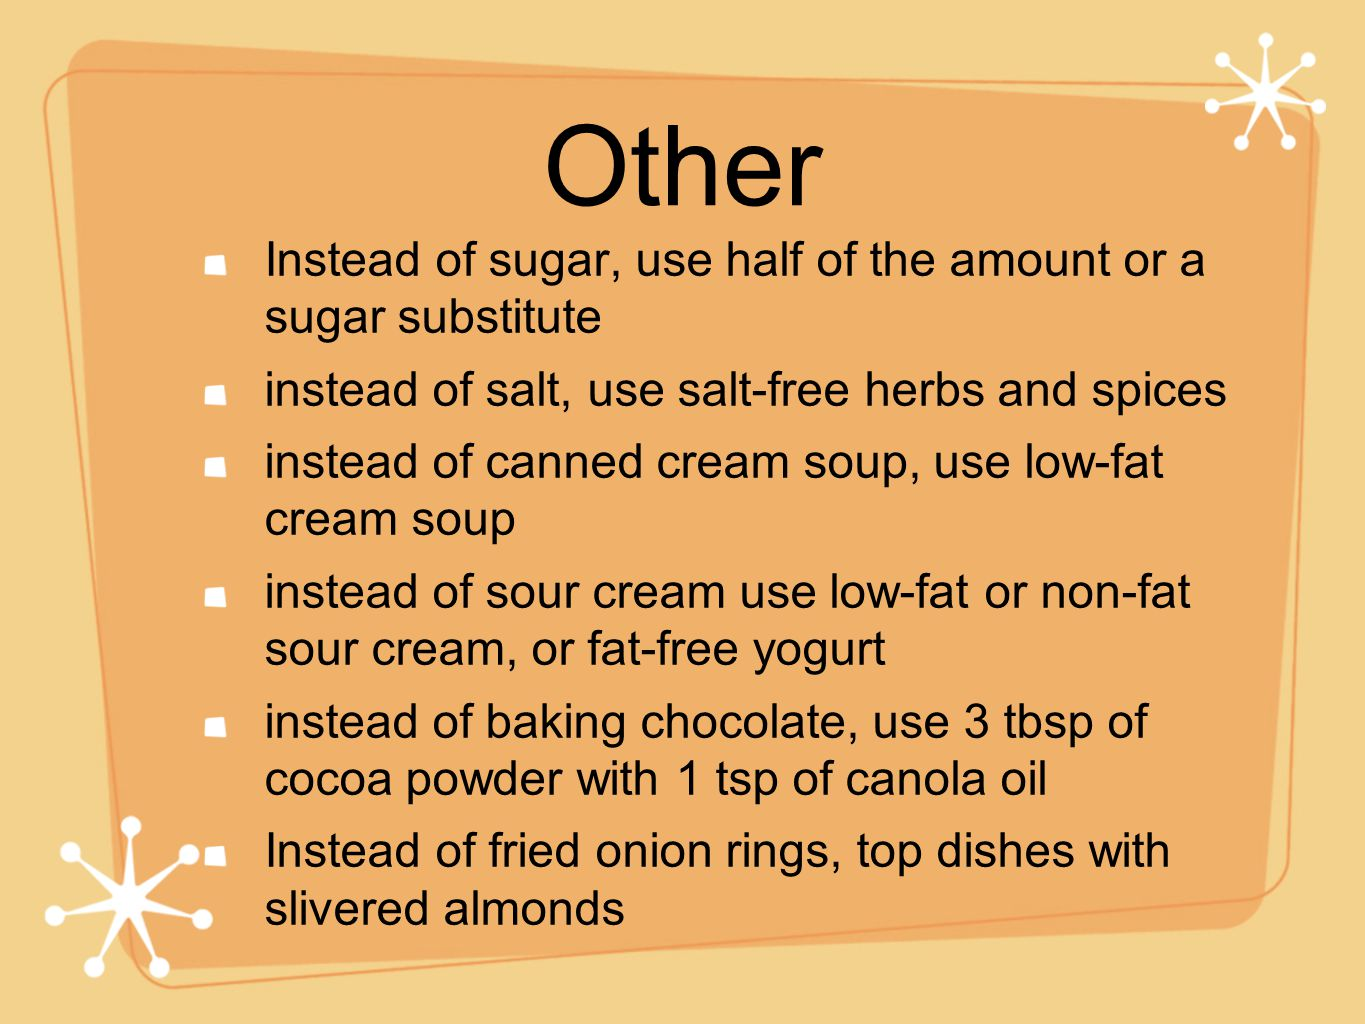 Other Instead of sugar, use half of the amount or a sugar substitute instead of salt, use salt-free herbs and spices instead of canned cream soup, use low-fat cream soup instead of sour cream use low-fat or non-fat sour cream, or fat-free yogurt instead of baking chocolate, use 3 tbsp of cocoa powder with 1 tsp of canola oil Instead of fried onion rings, top dishes with slivered almonds